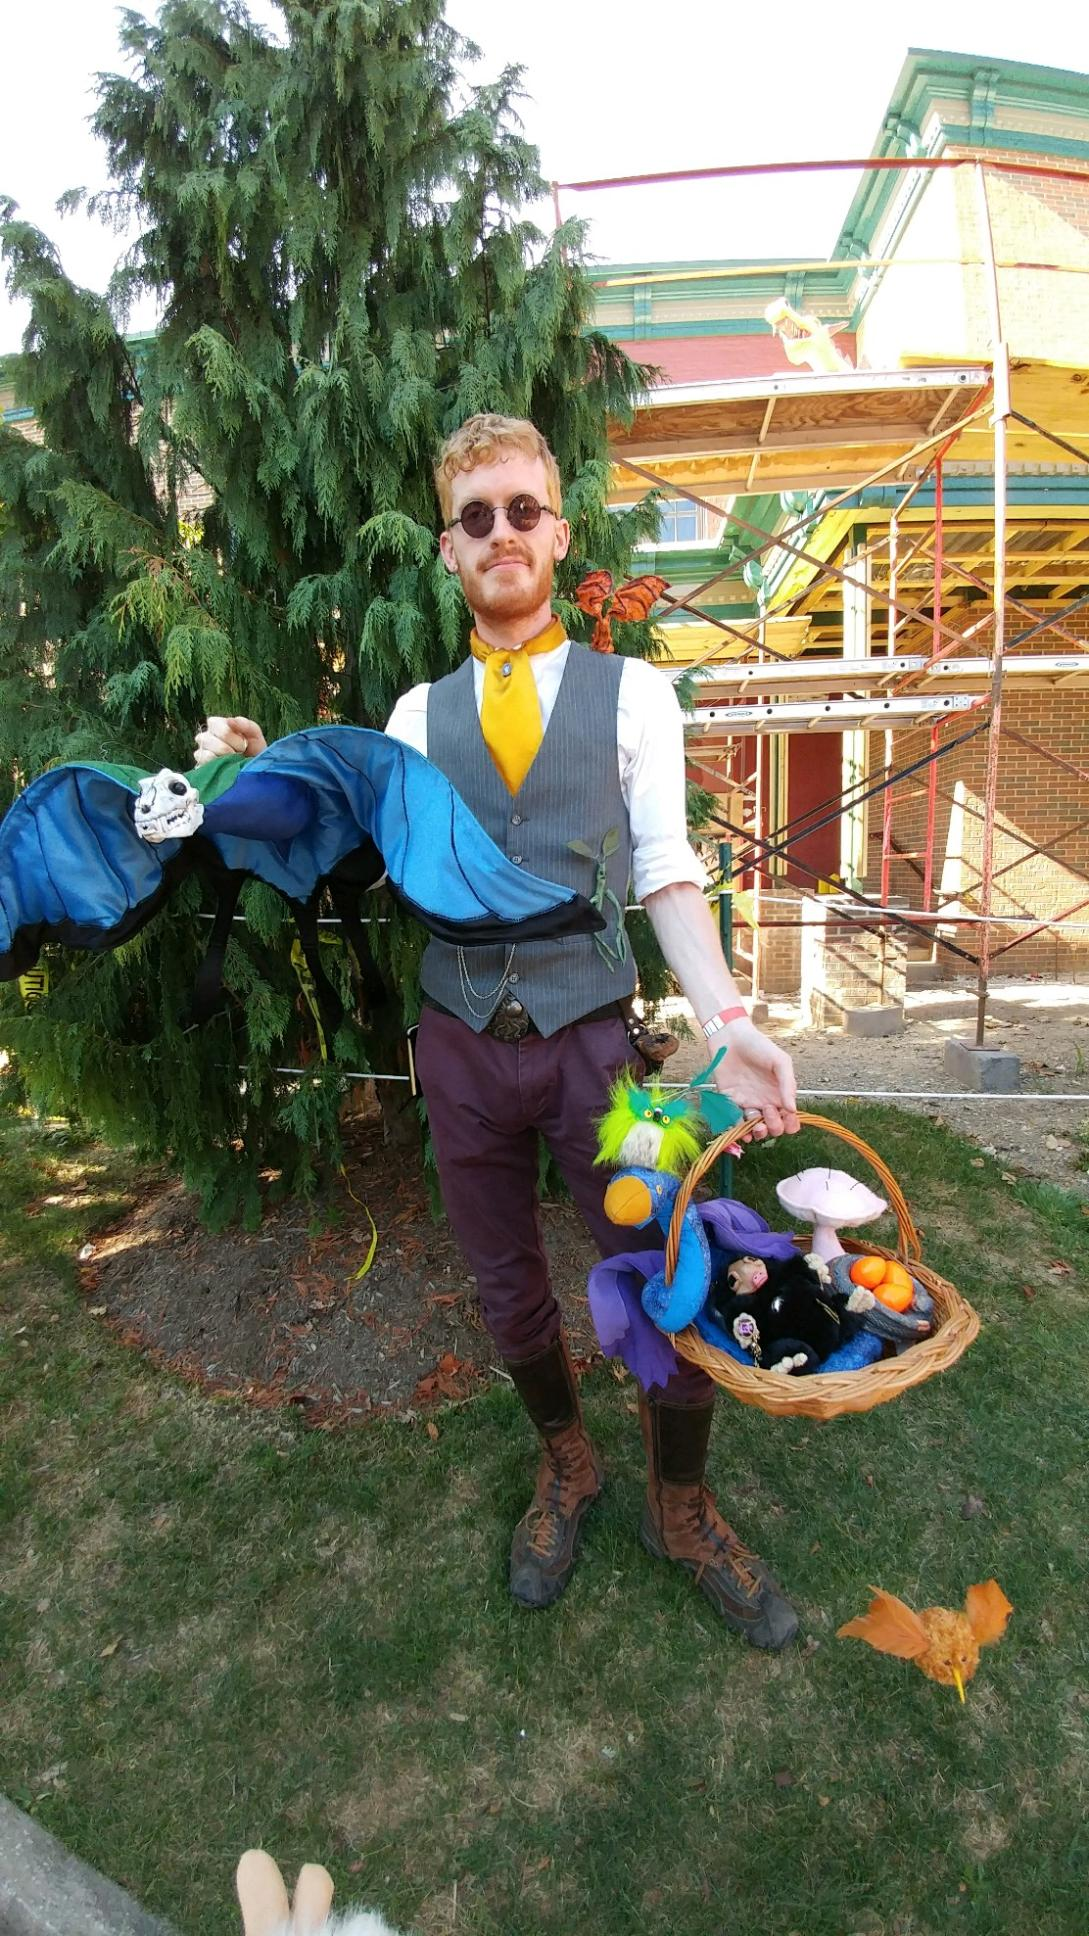 Here's a photo from Kent Potterfest of my magizoologist outfit and collection of creatures. I have enough at this point that I can't physically carry all of them at the same time XD